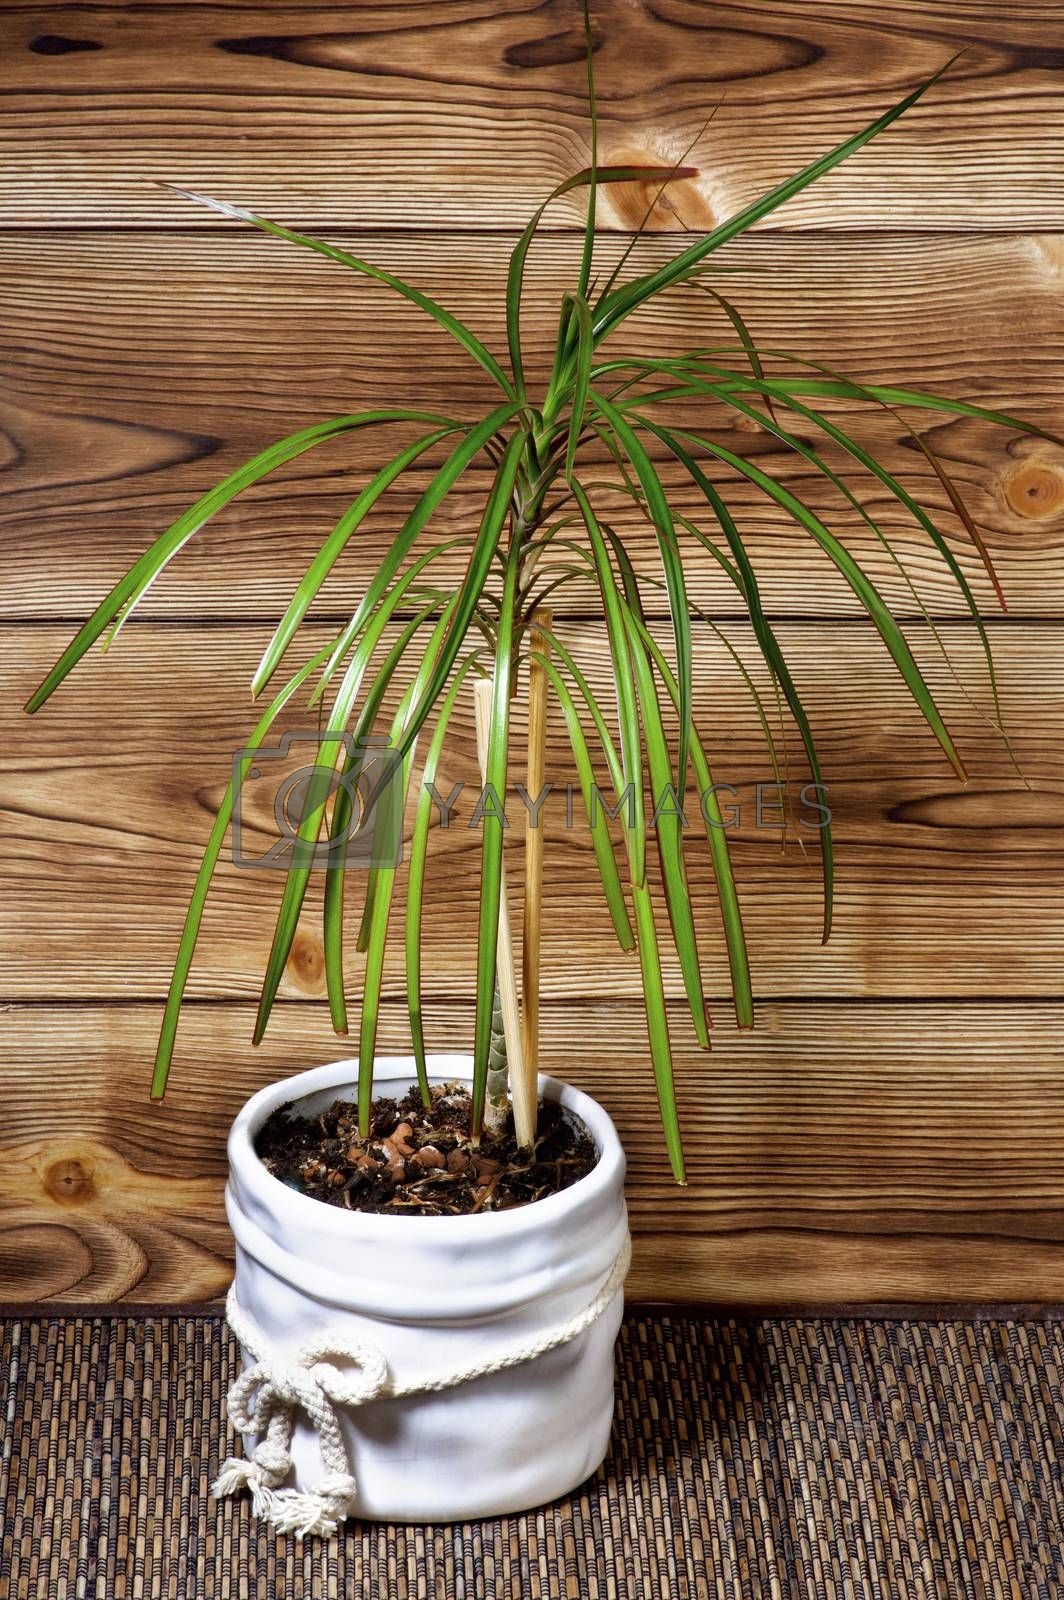 Small Dracaena in White Flower Pot against Wooden Plank closeup on Wicker background